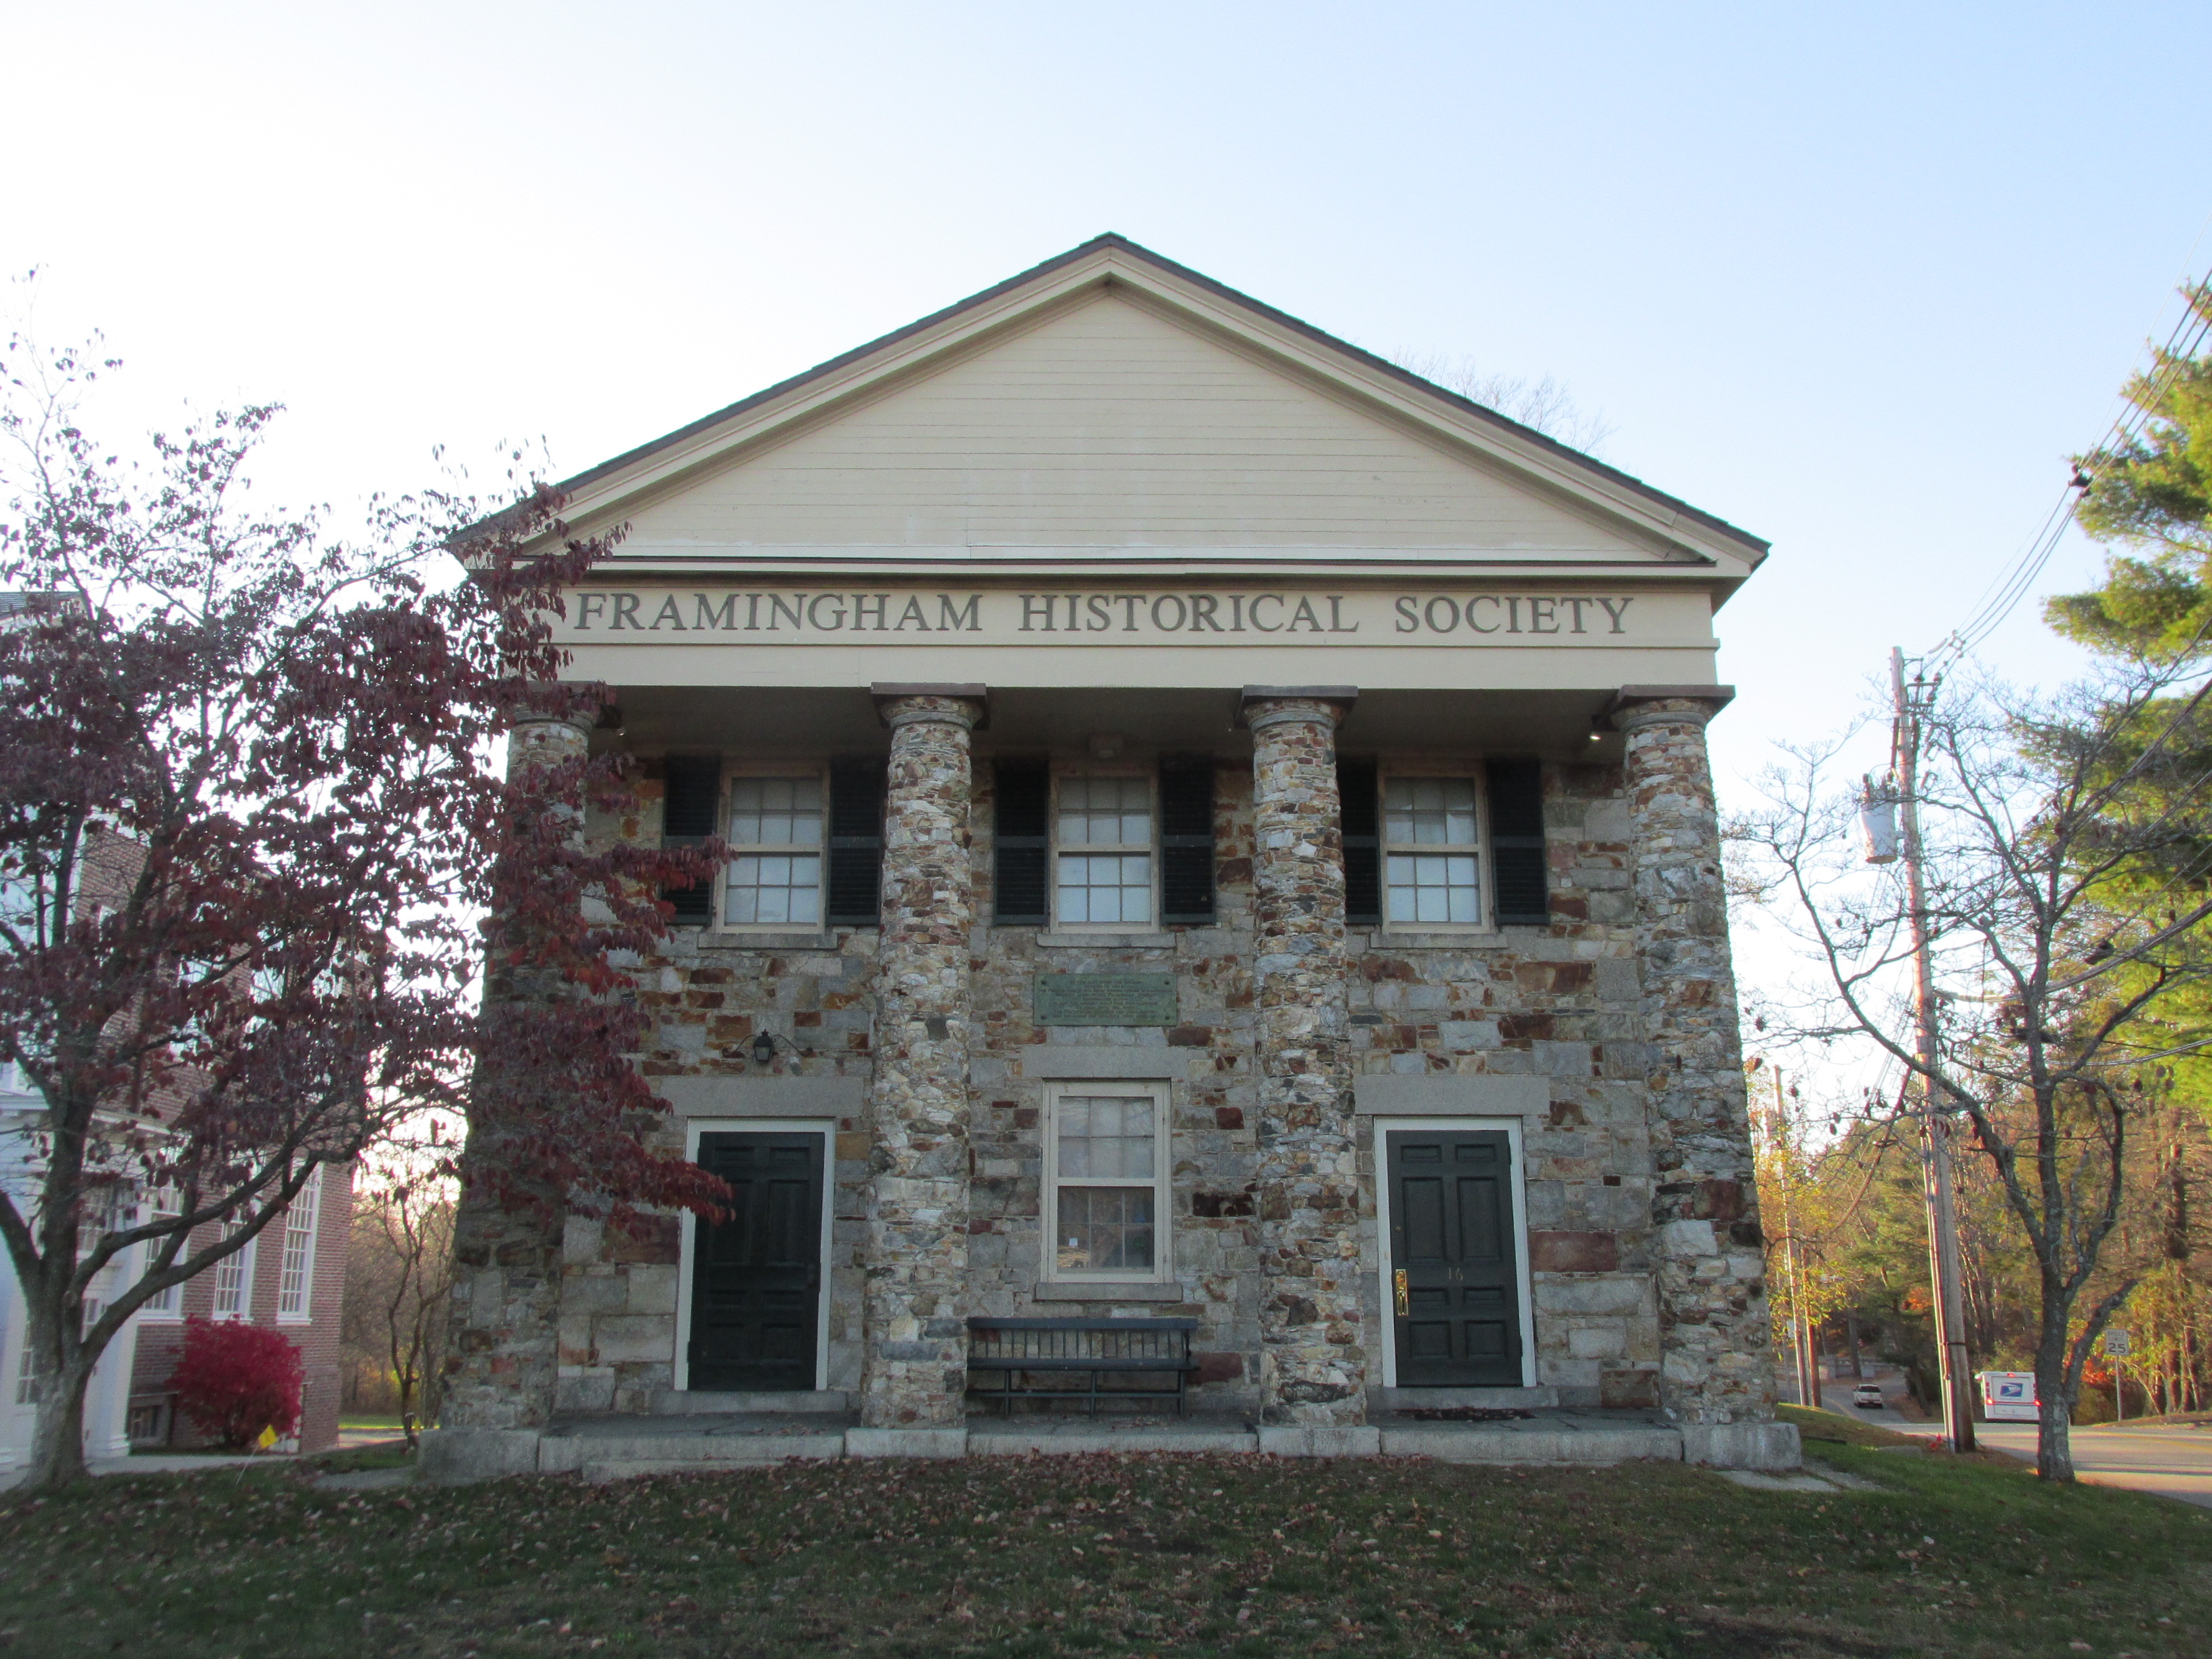 The Old Academy of the Framingham Historical Center (image from Wikimedia)